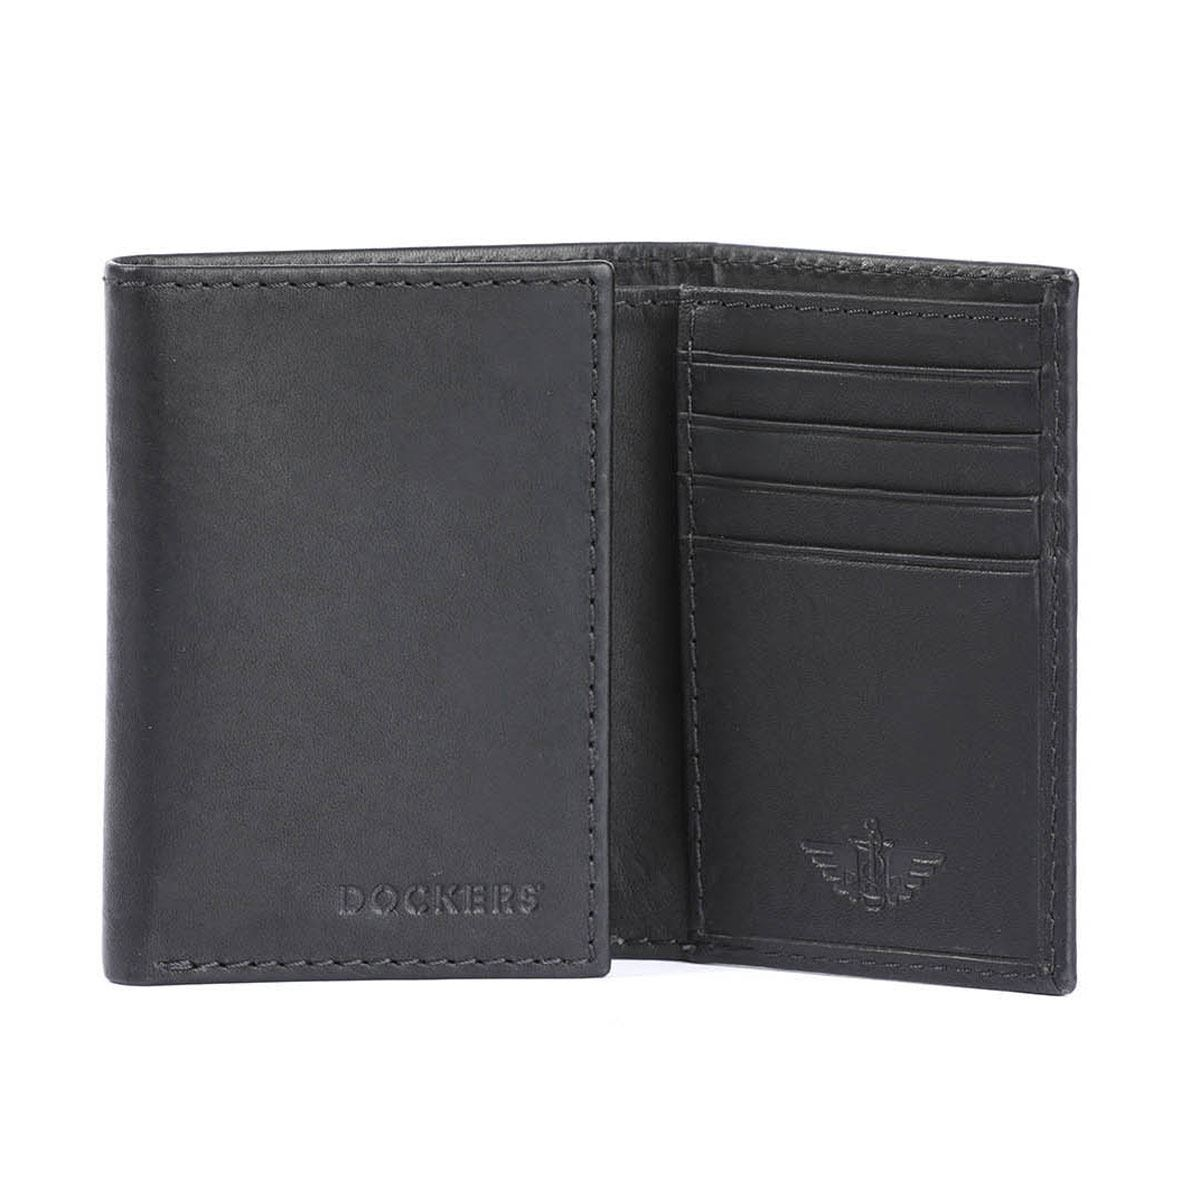 Billetera Dockers Trifold Negro